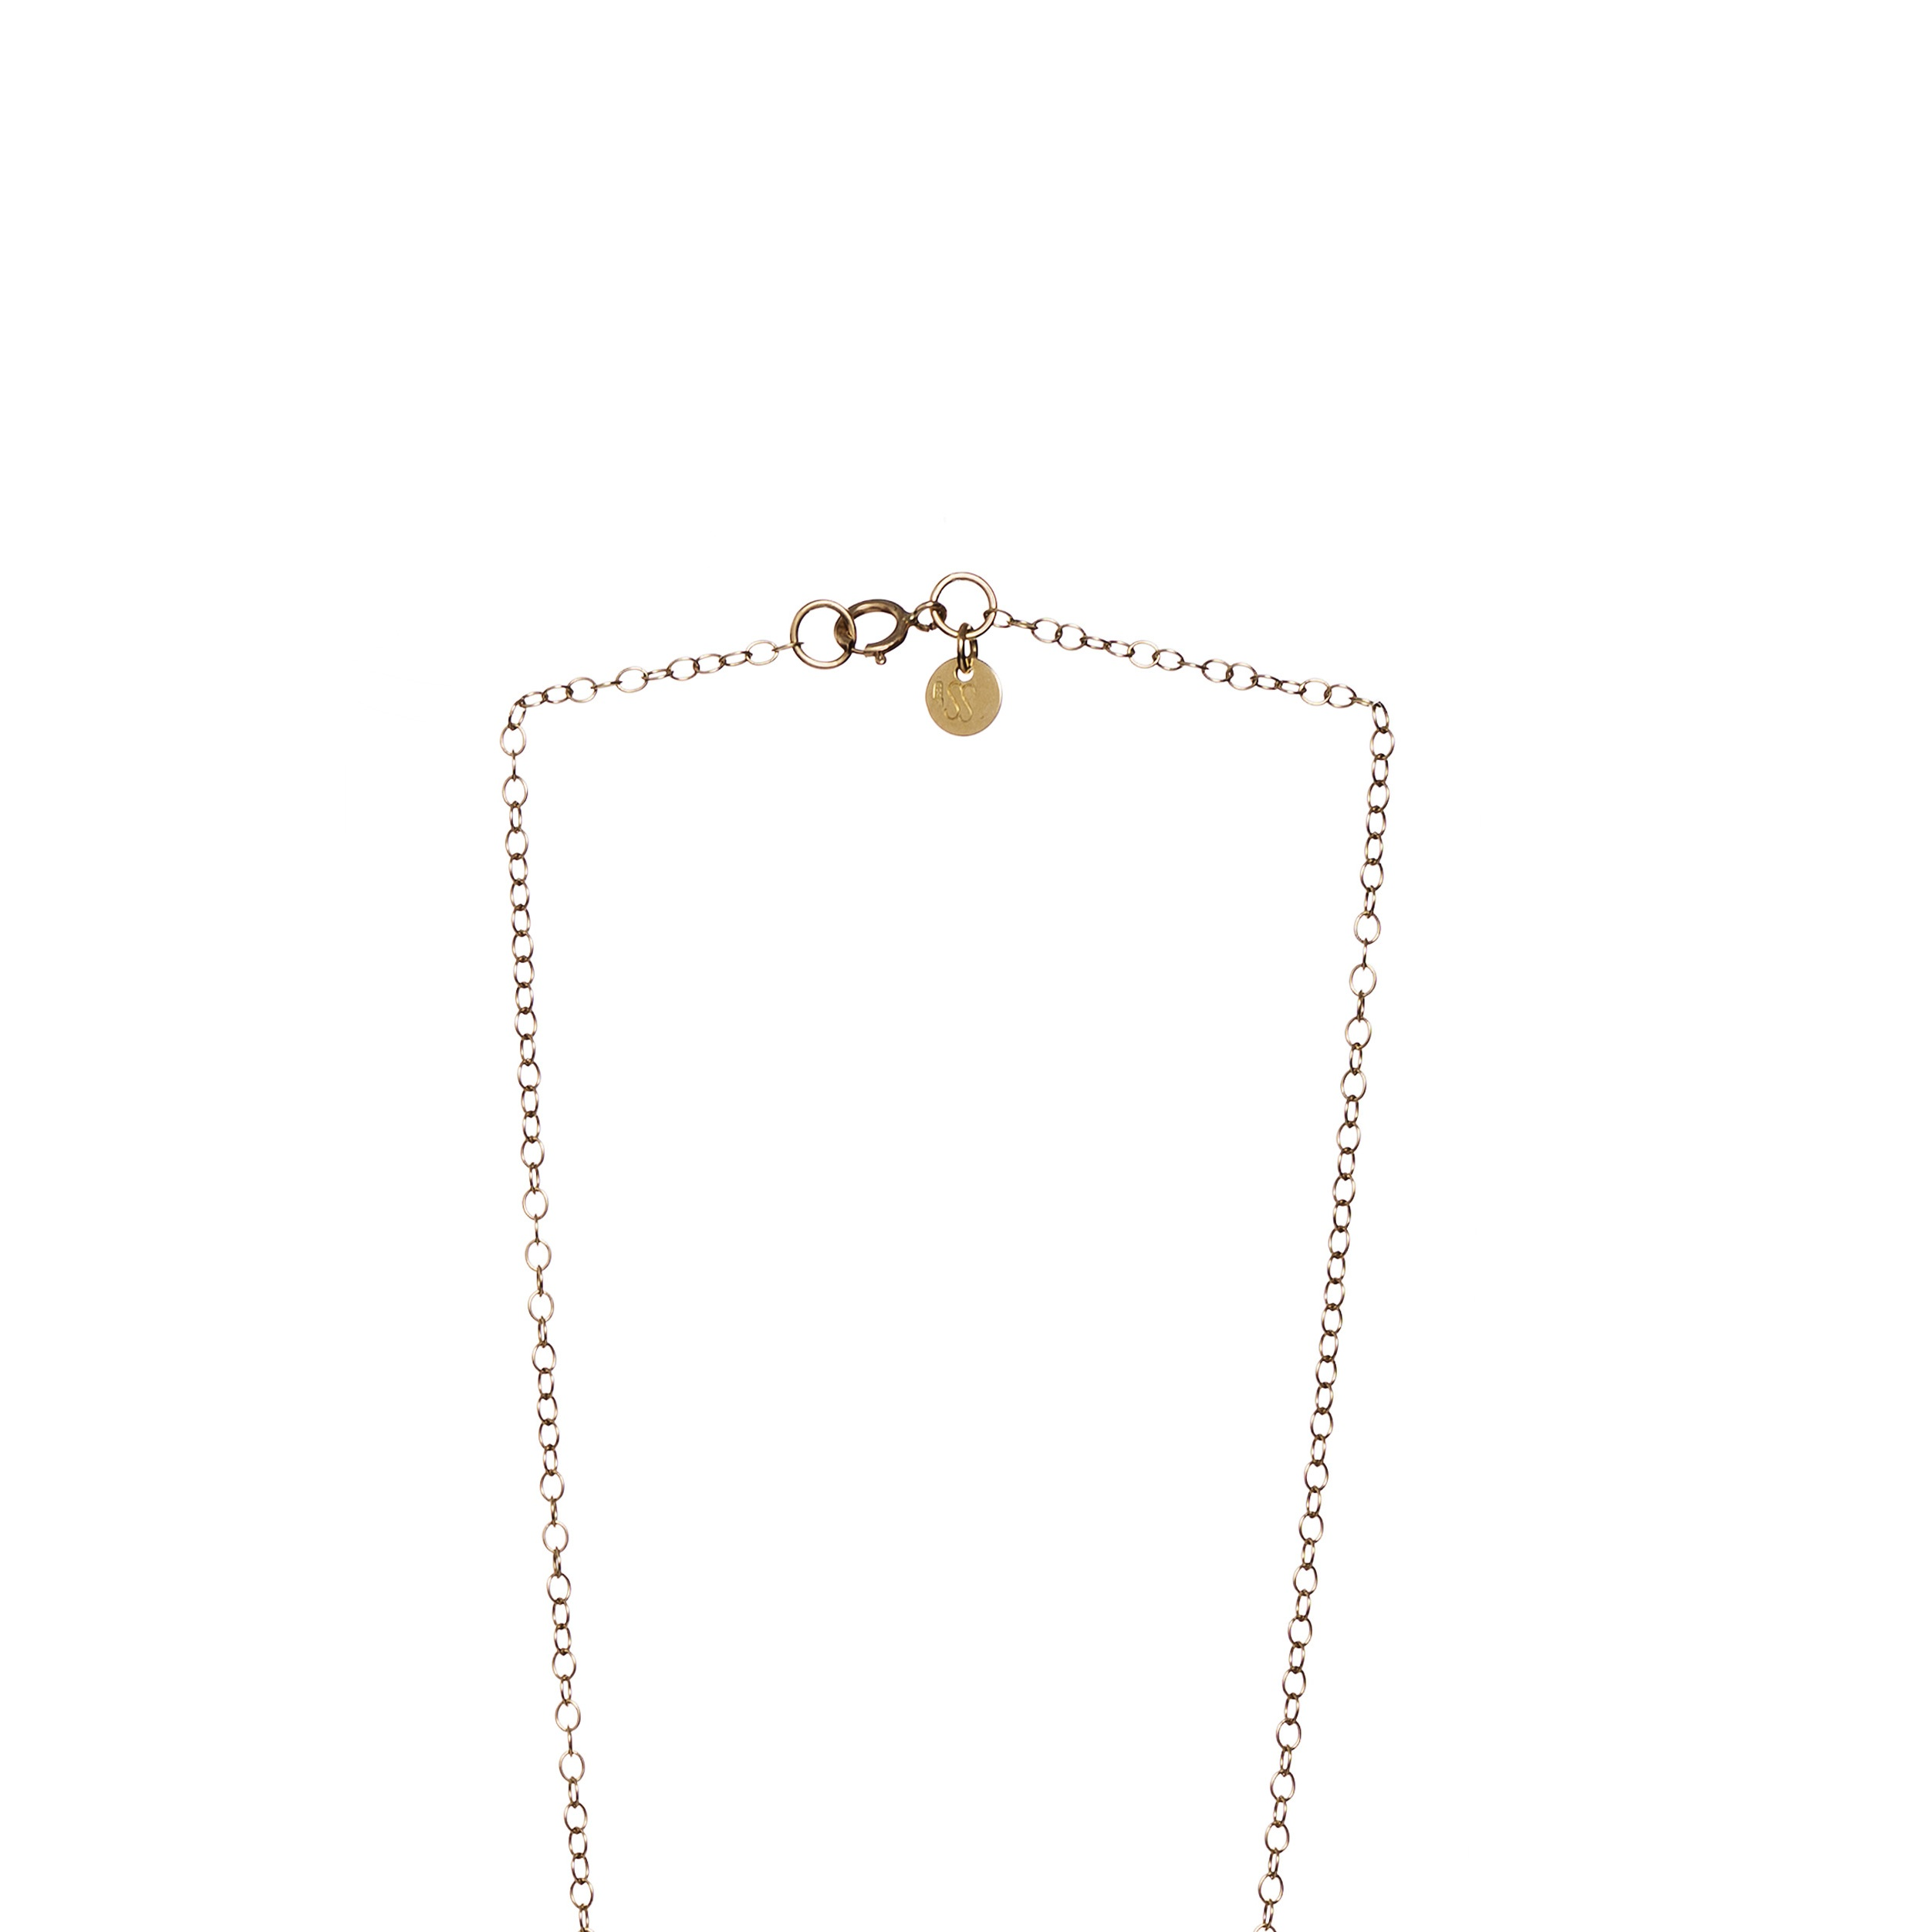 see chain necklace you on luna gold at products jewellery everyday rose charm sunrise la